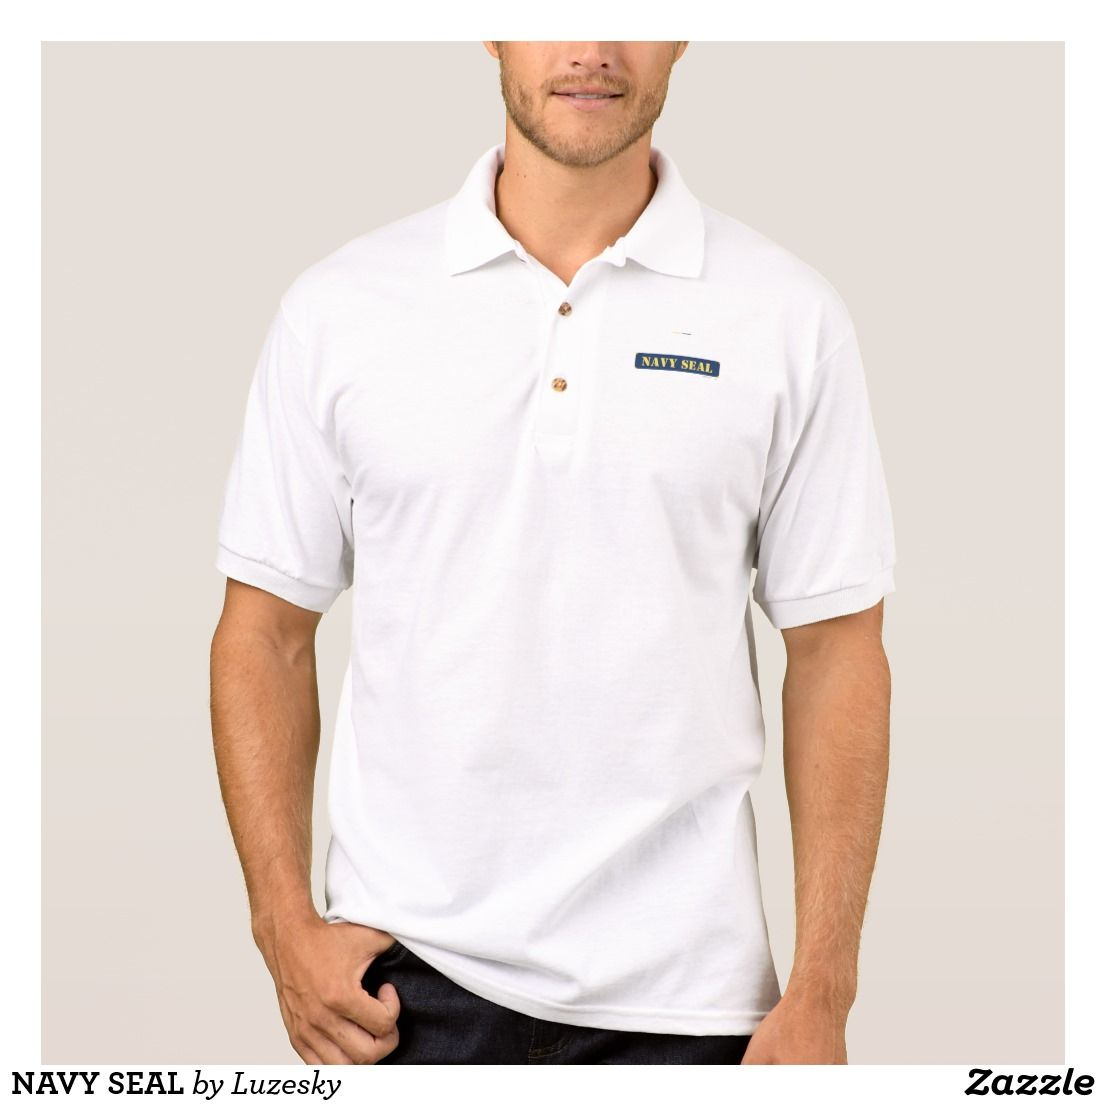 NAVY SEAL POLO SHIRT | Lykens-Luzesky T-shirts - Promote for